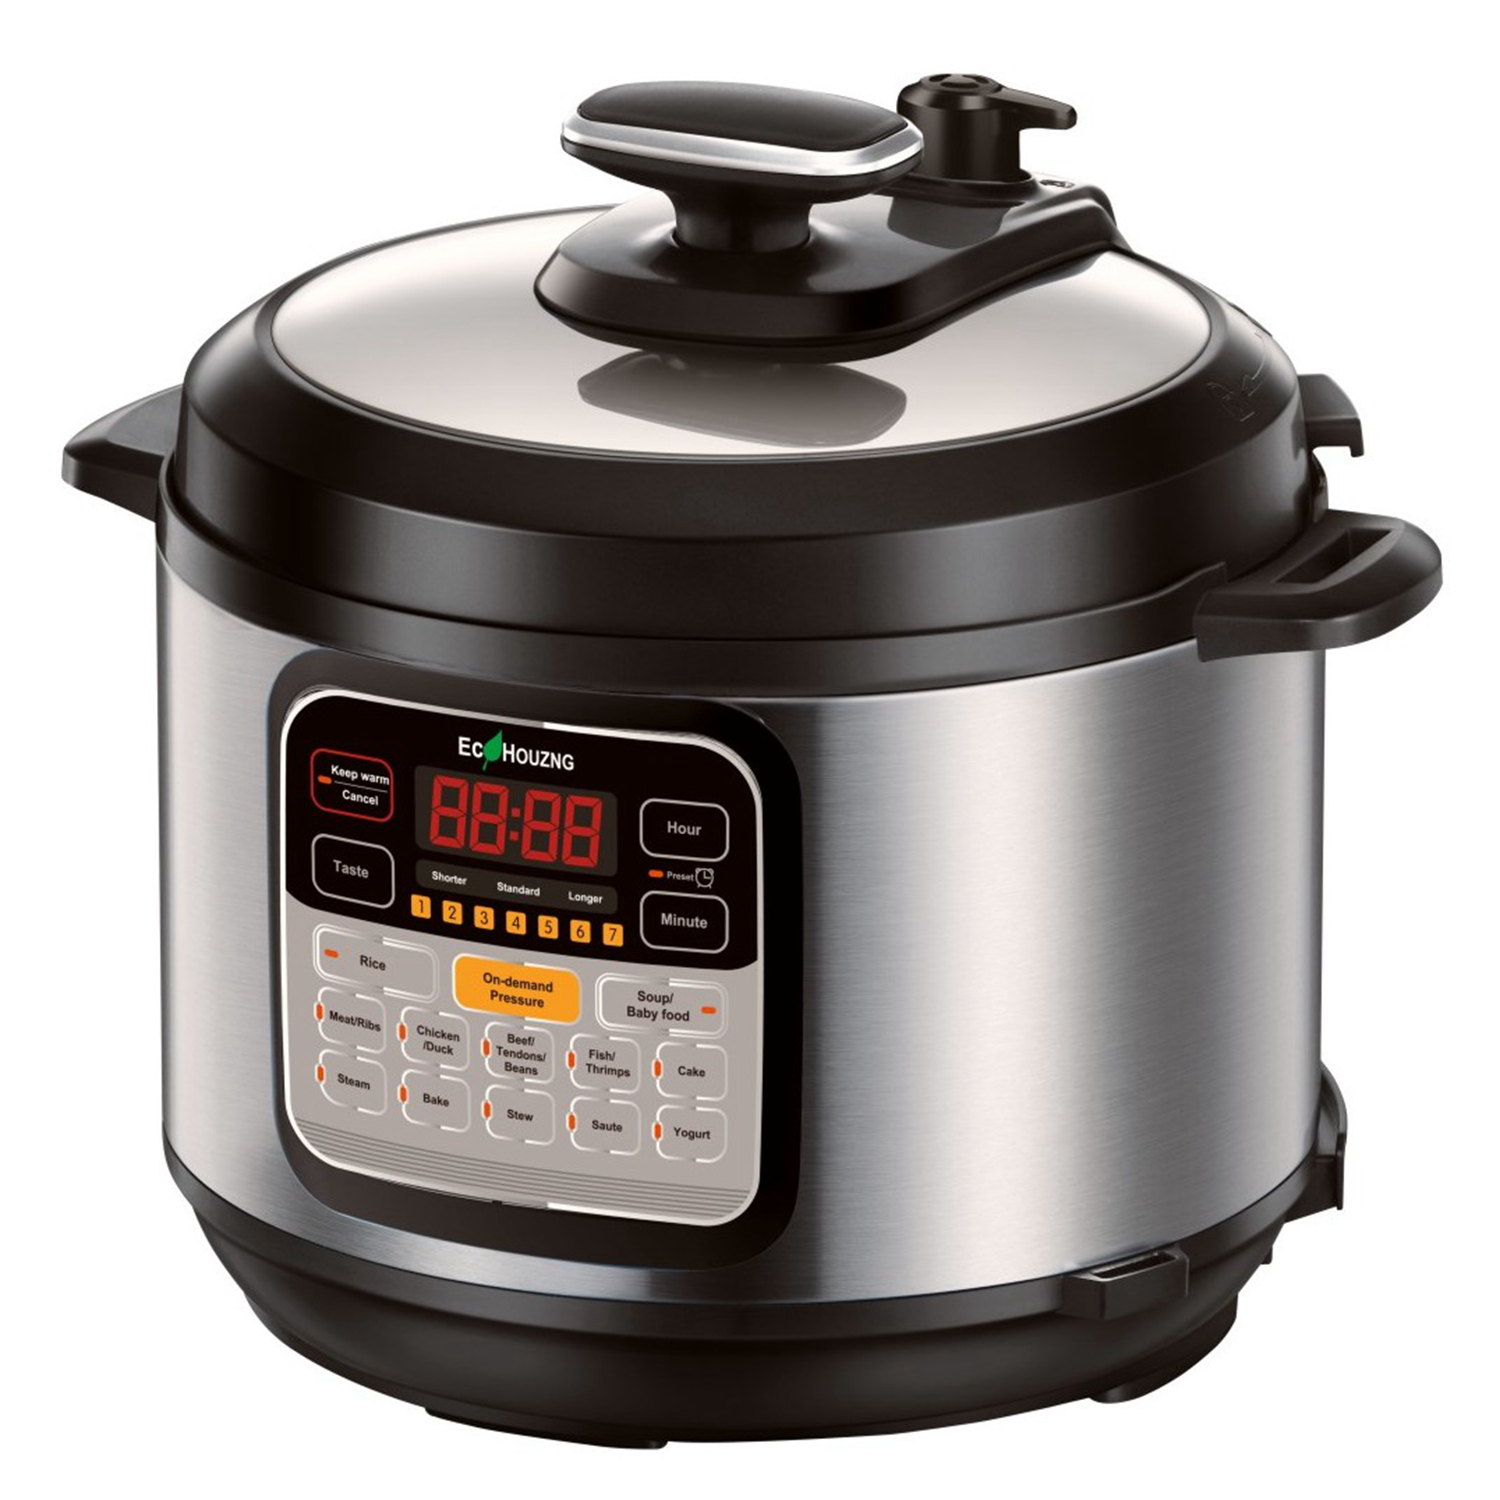 Ecohouzng Super Luxury Electric Pressure Cooker